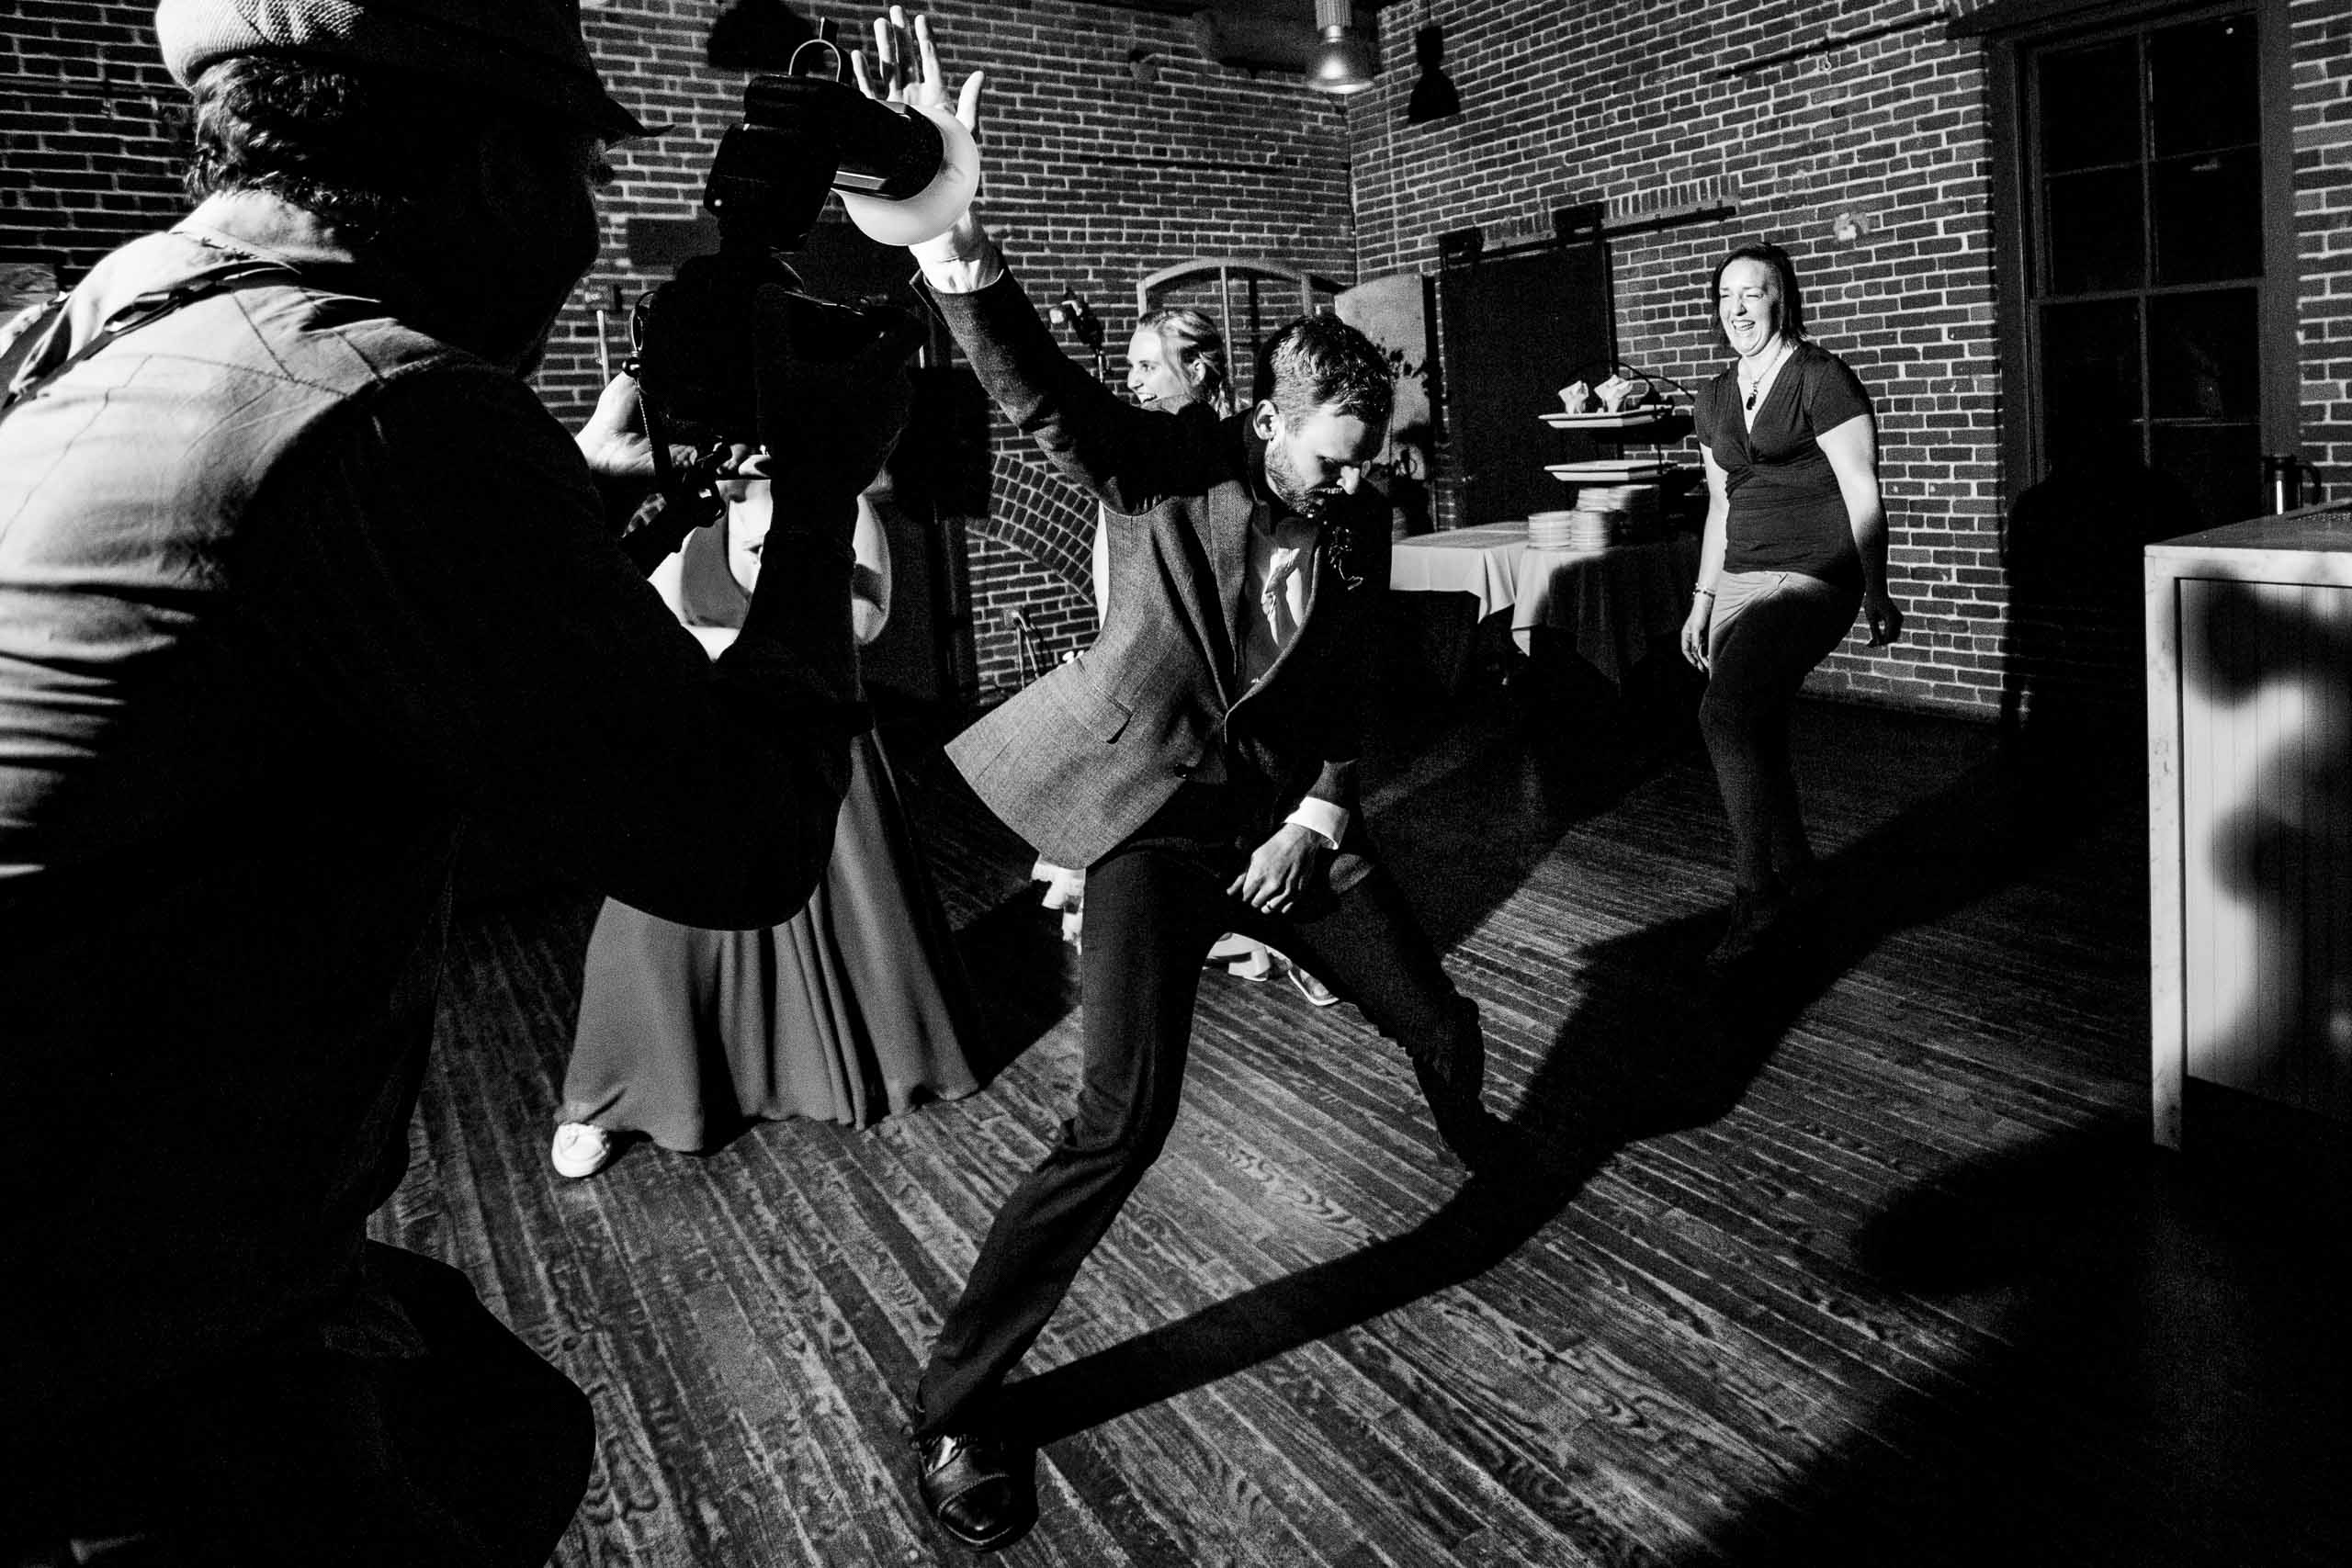 Groom dancing wild at Bridgeport Heritage Room in Portland during their reception after after their Mt Hood Meadows wedding at Umbrella Falls